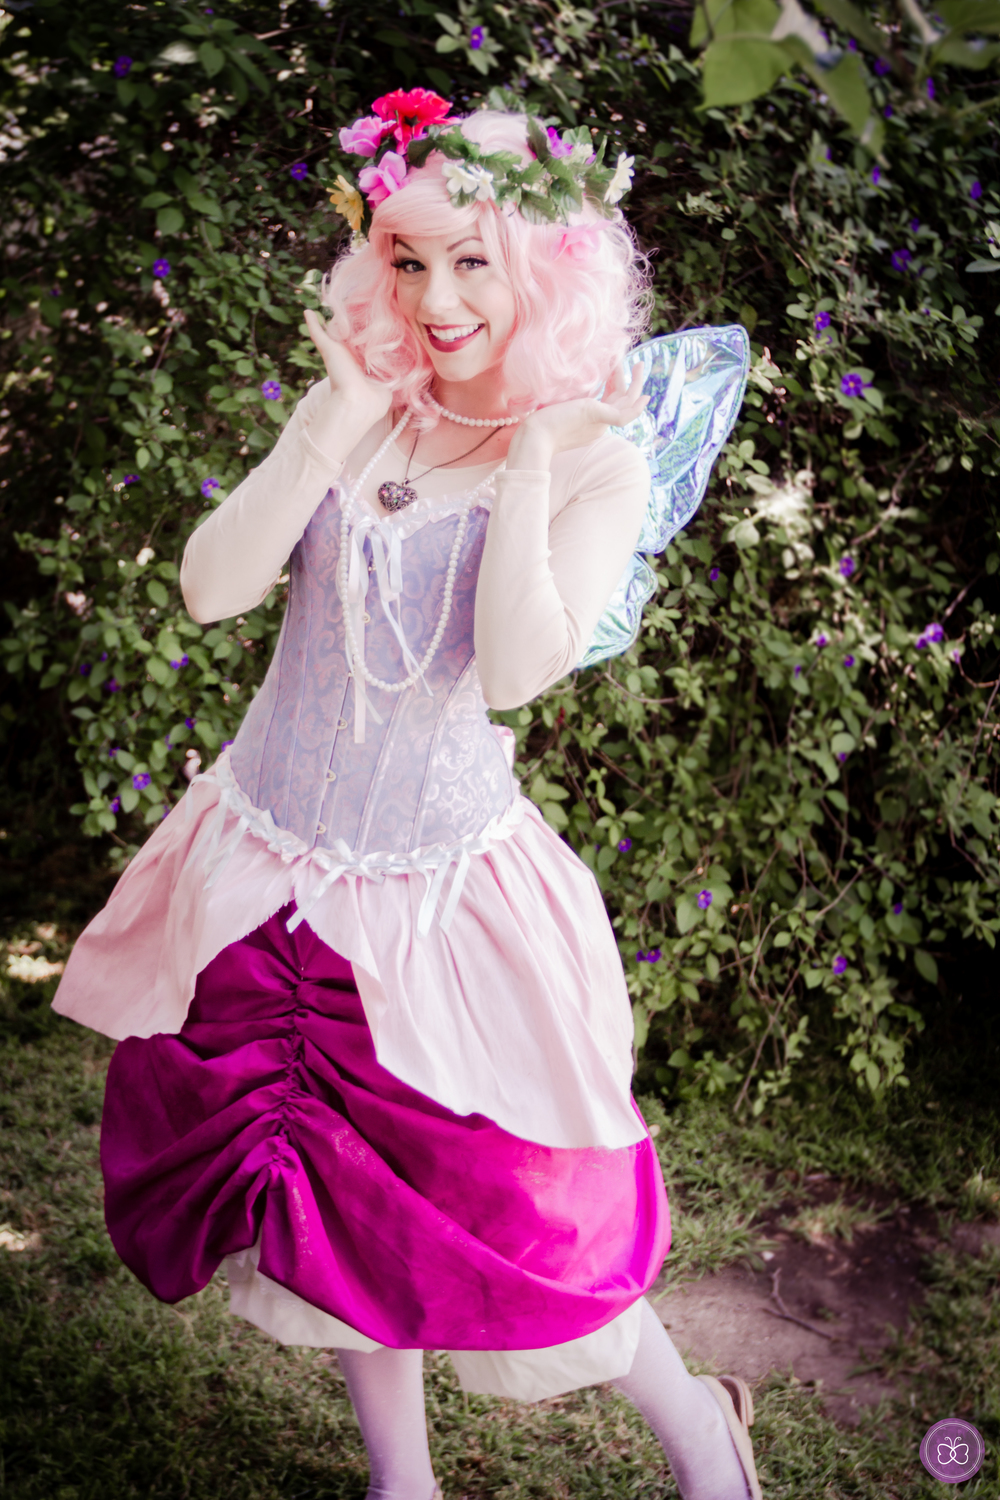 magic fairy party character faeries los angeles (1 of 1).jpg